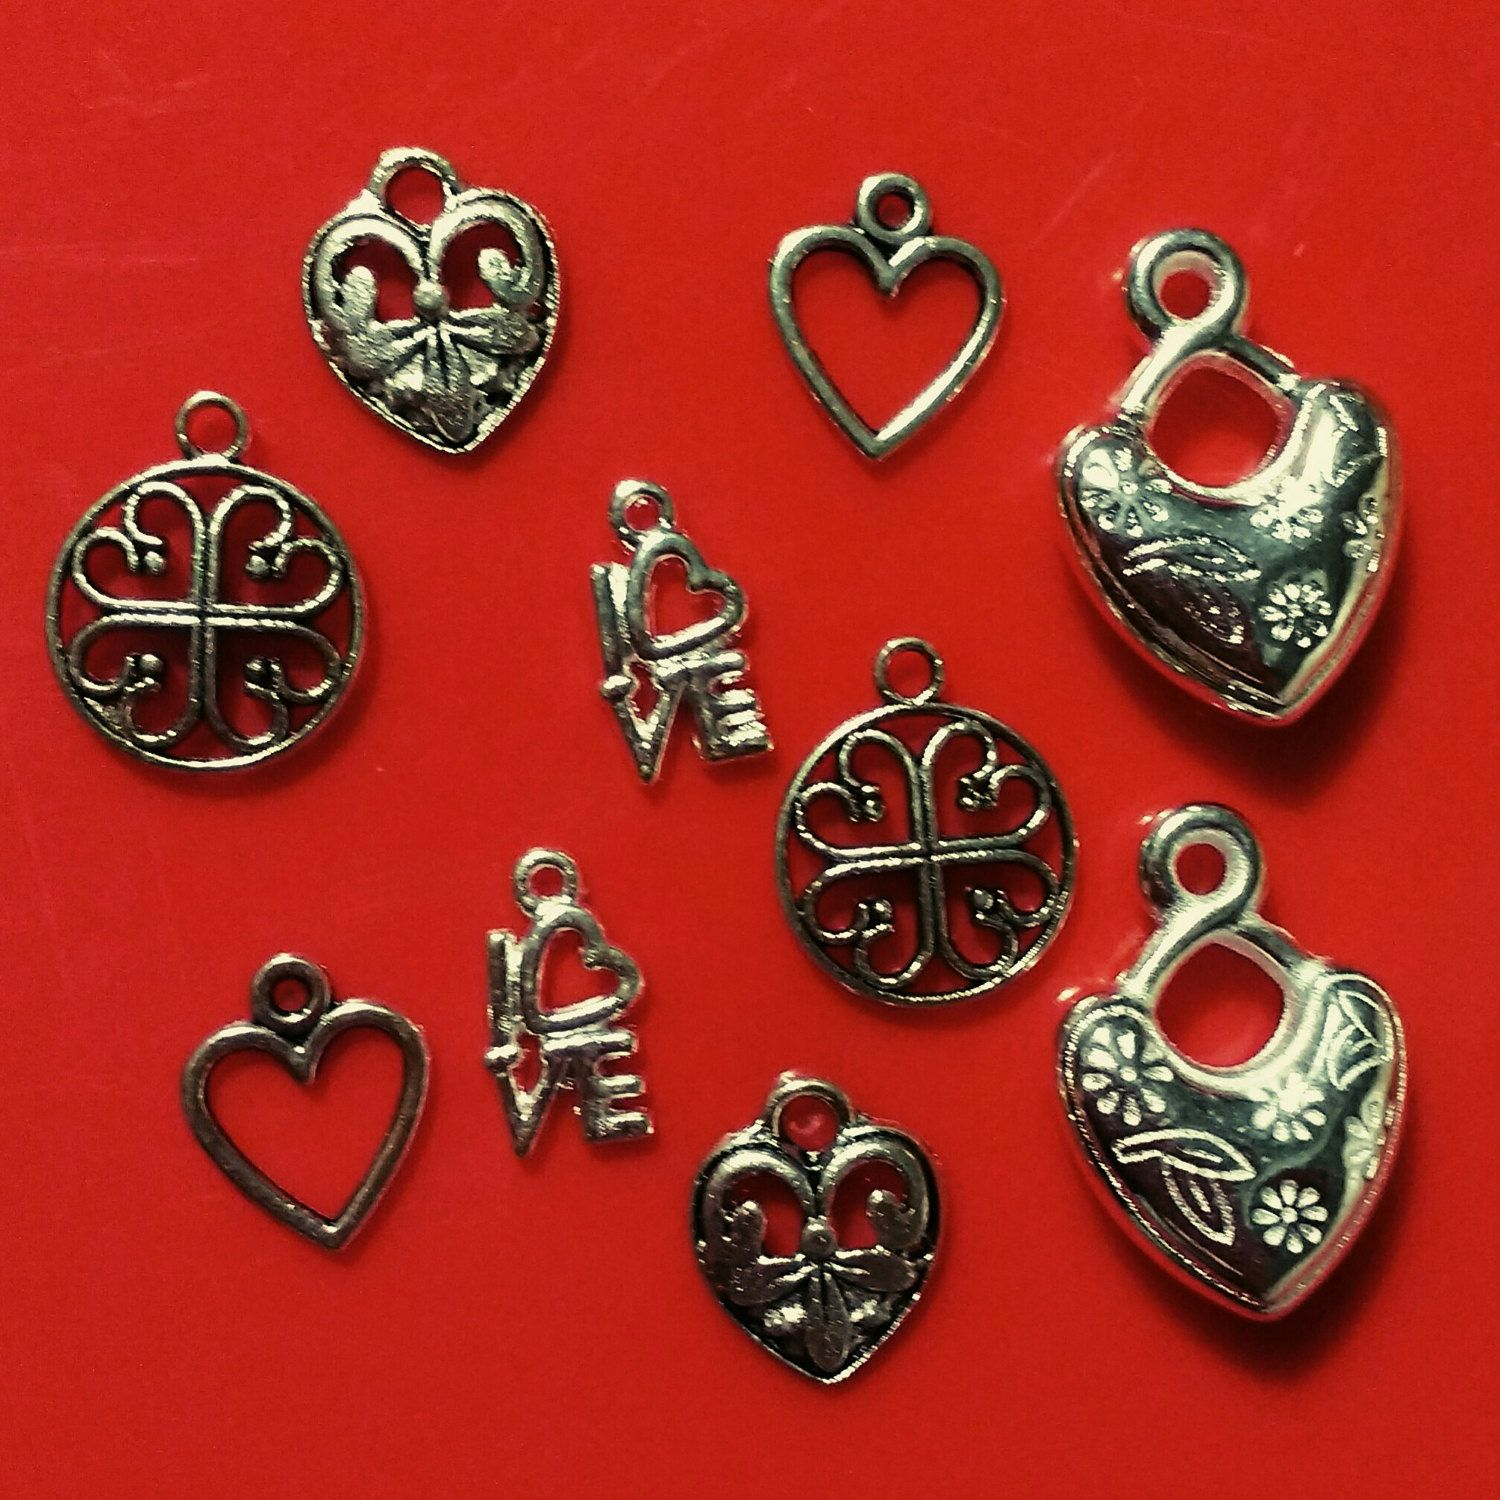 10x silver heart charms pendants mixed plated findings friendship 10x silver heart charms pendants mixed plated findings friendship jewellery making diy jewelry earring bracelet necklace lucky craft uk aloadofball Image collections